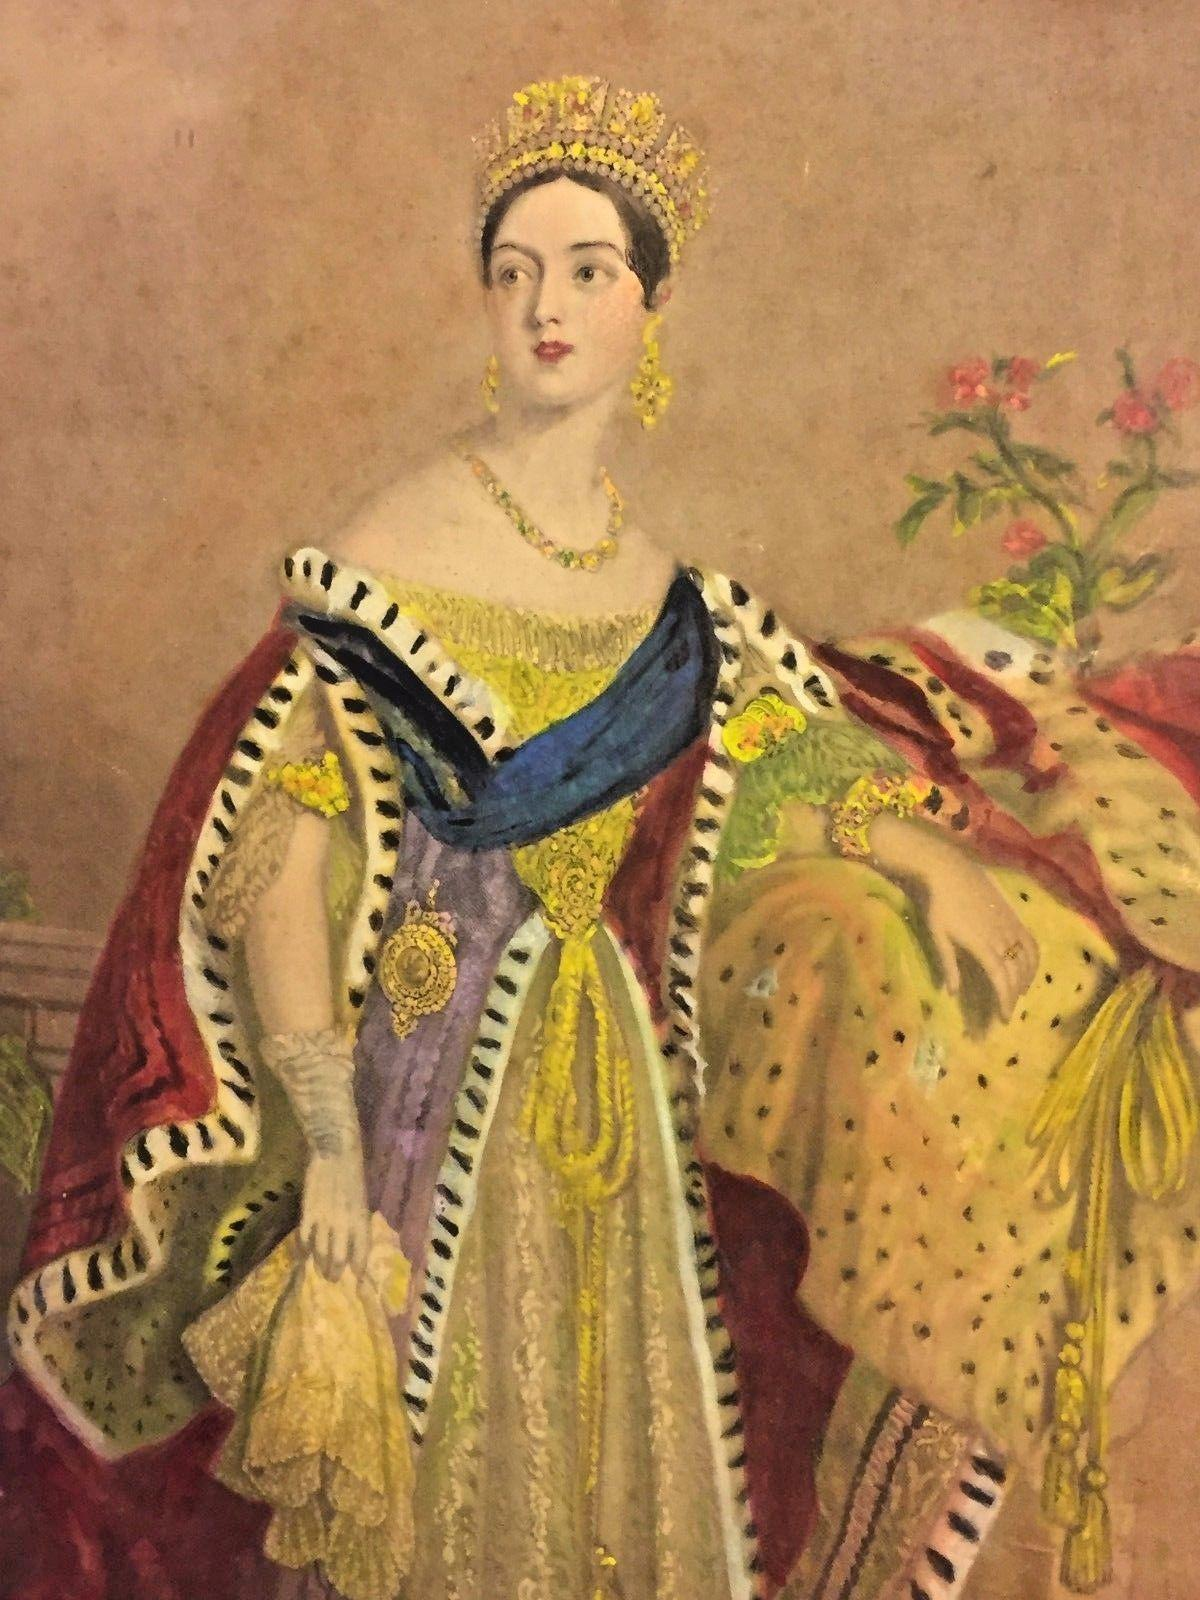 Engraving of Queen Victoria by Henry Sadd of New York in 1847, based upon a painting done by Alfred Edward Chalon in 1837. Chalon's painting of Victoria in her State robes going to the House of Lords for her first official act, the prorogation of the Parliament, on July 17, 1837. was engraved by Samuel Cousins and distributed to the public the day of Victoria's coronation, June 28, 1838.